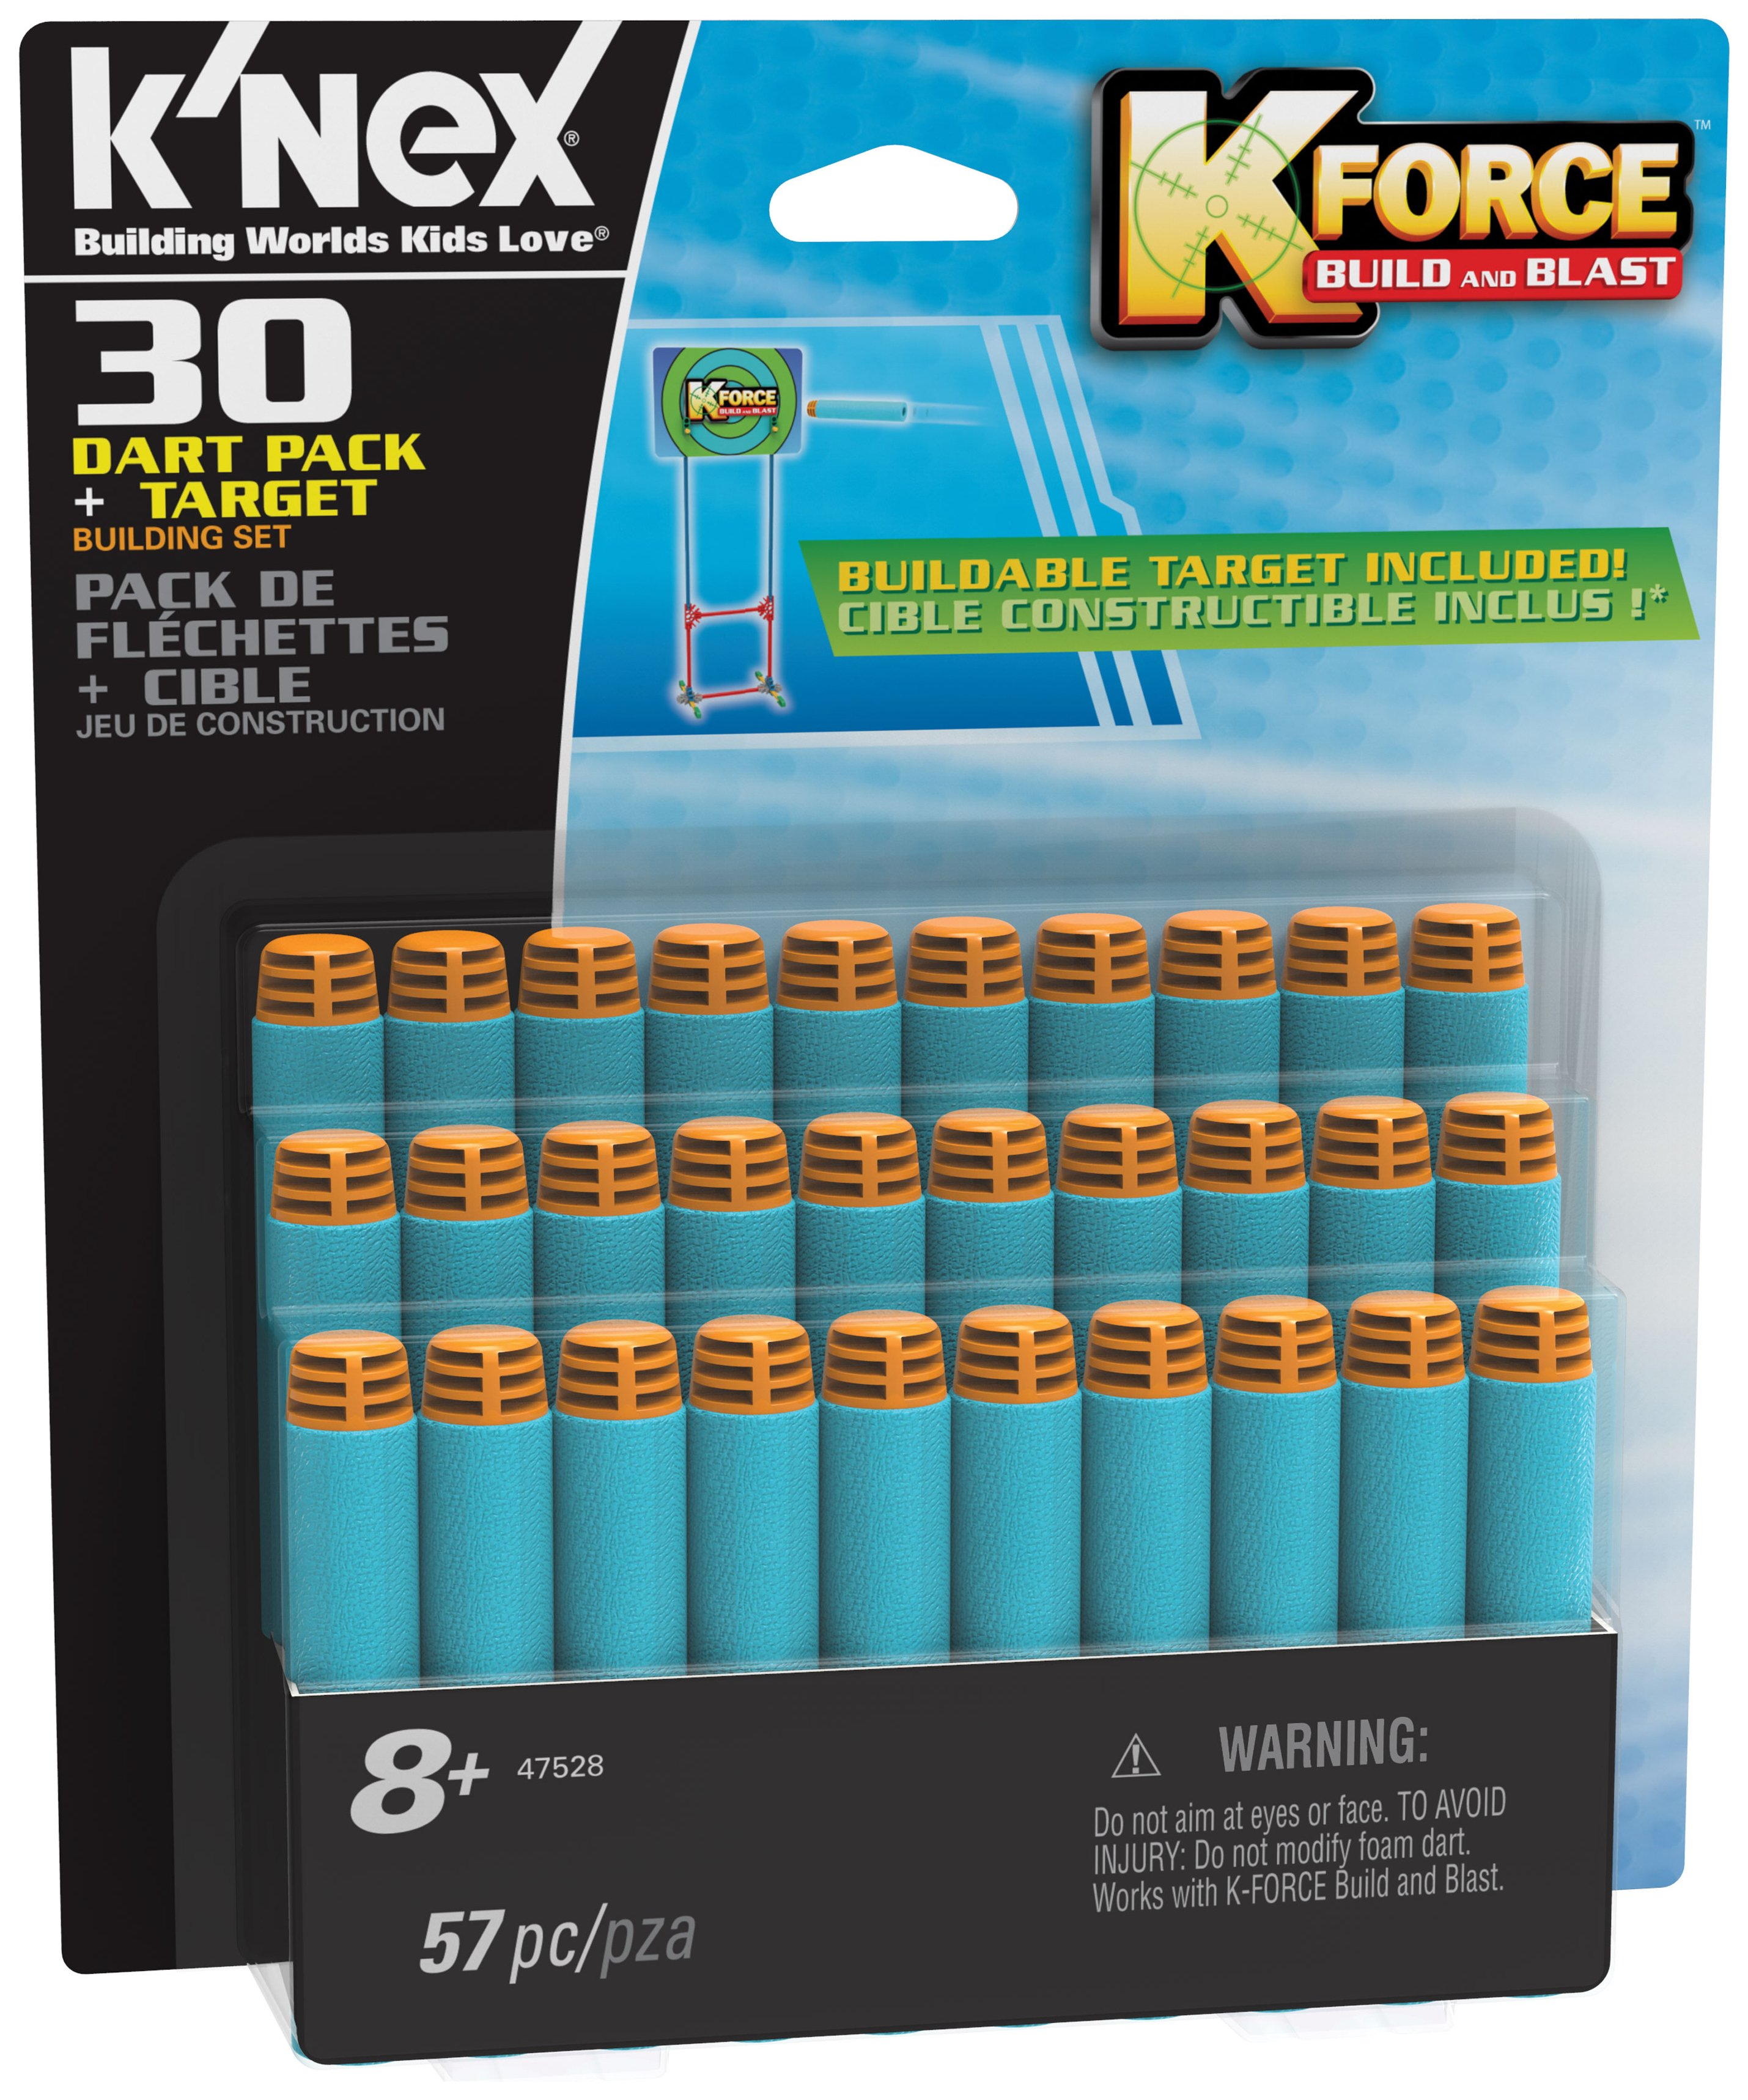 K'NEX K-Force Darts and Target - 30 Pack